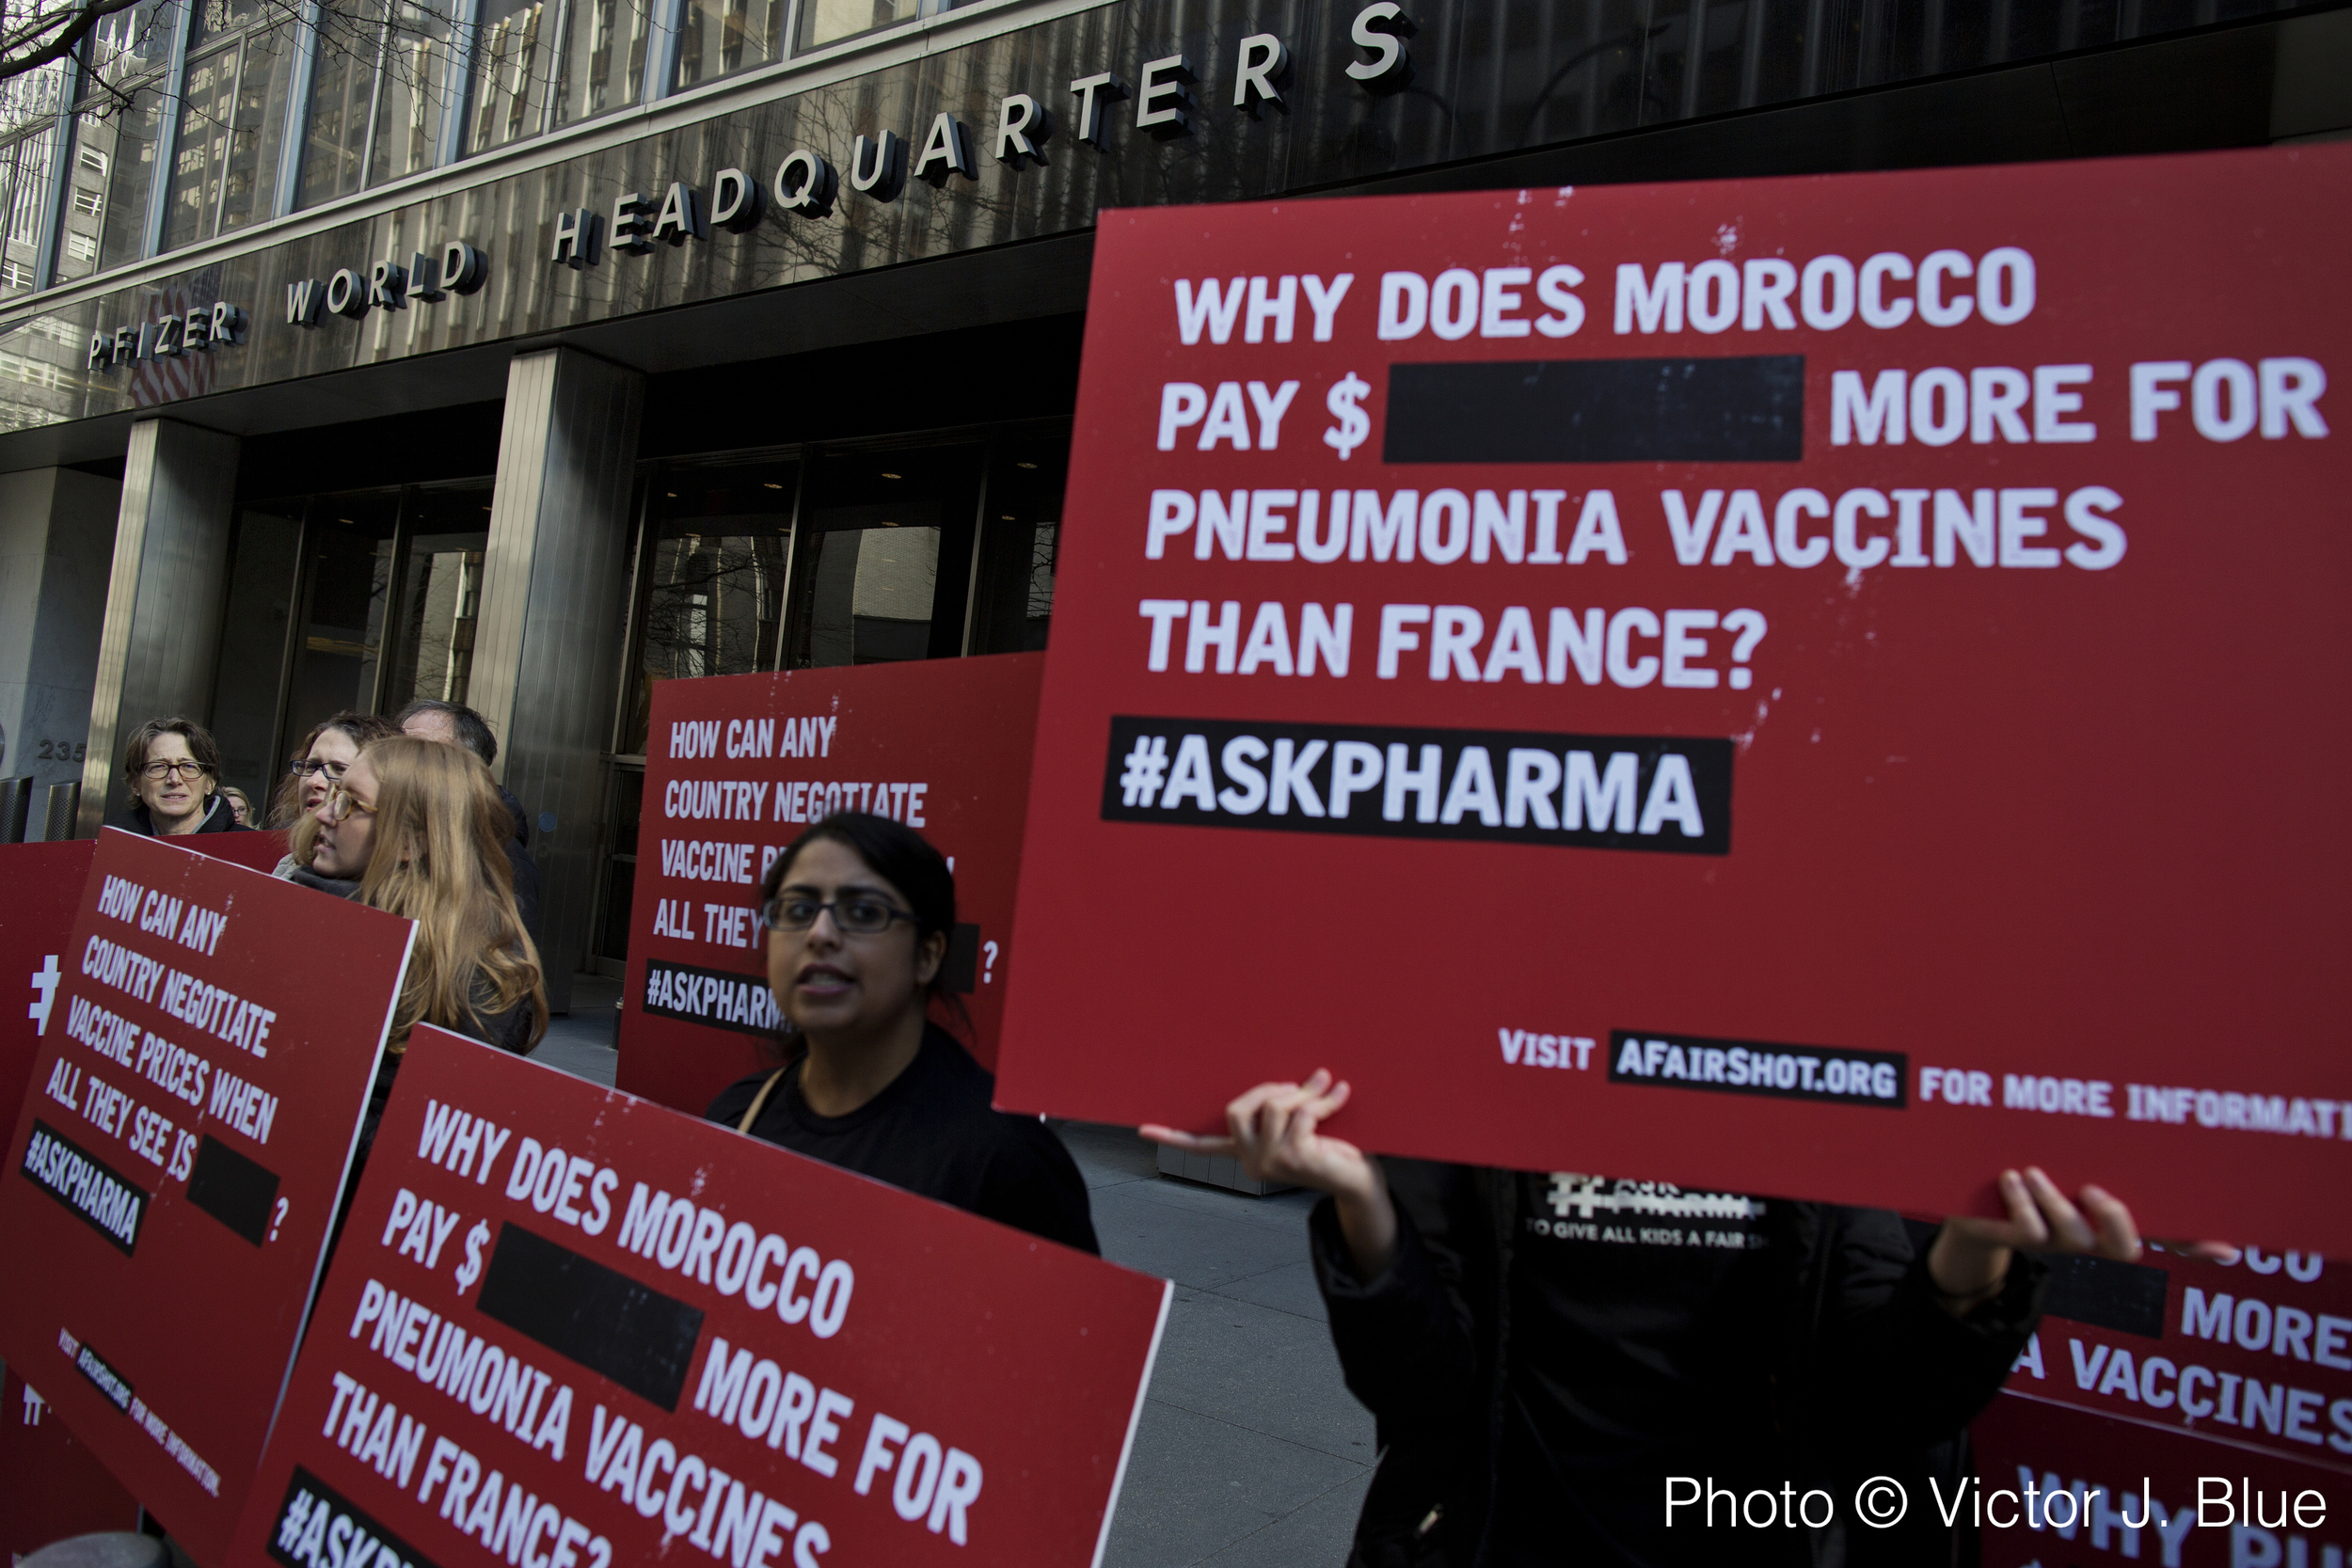 Activists from Doctors Without Borders protest vaccine pricing policies in front of the Pfizer World Headquarters in New York NY,  Thursday, April 22, 2015. Pfizer refuses to publish the price of the pnuemococcal vaccine, preventing developing countries from negotiating a fair price for the drug.